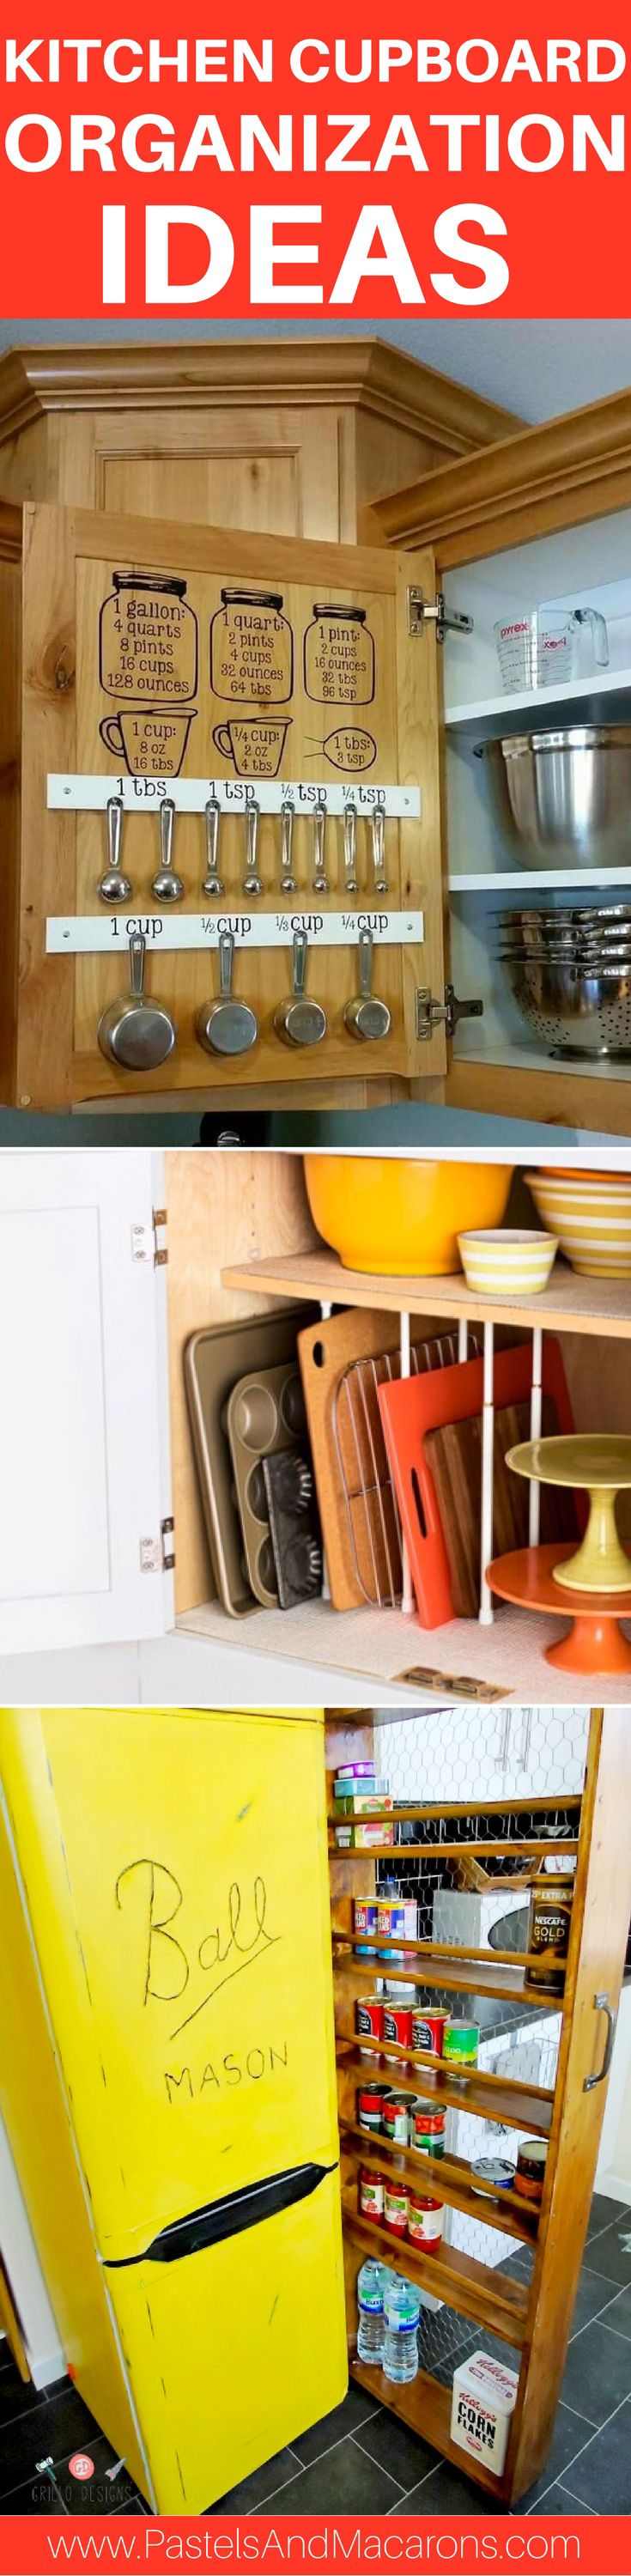 DIY kitchen cupboard organizing ideas and hacks to help you better organize your kitchen. Perfect organization ideas for small kitchen or rental living. These tips will help you organize your cupboards like a pro and on the cheap! Simple and easy ways to help you organize your entire kitchen with containers, jars and labels and more! Get those cupboards, draws and pantry under control once and for all!